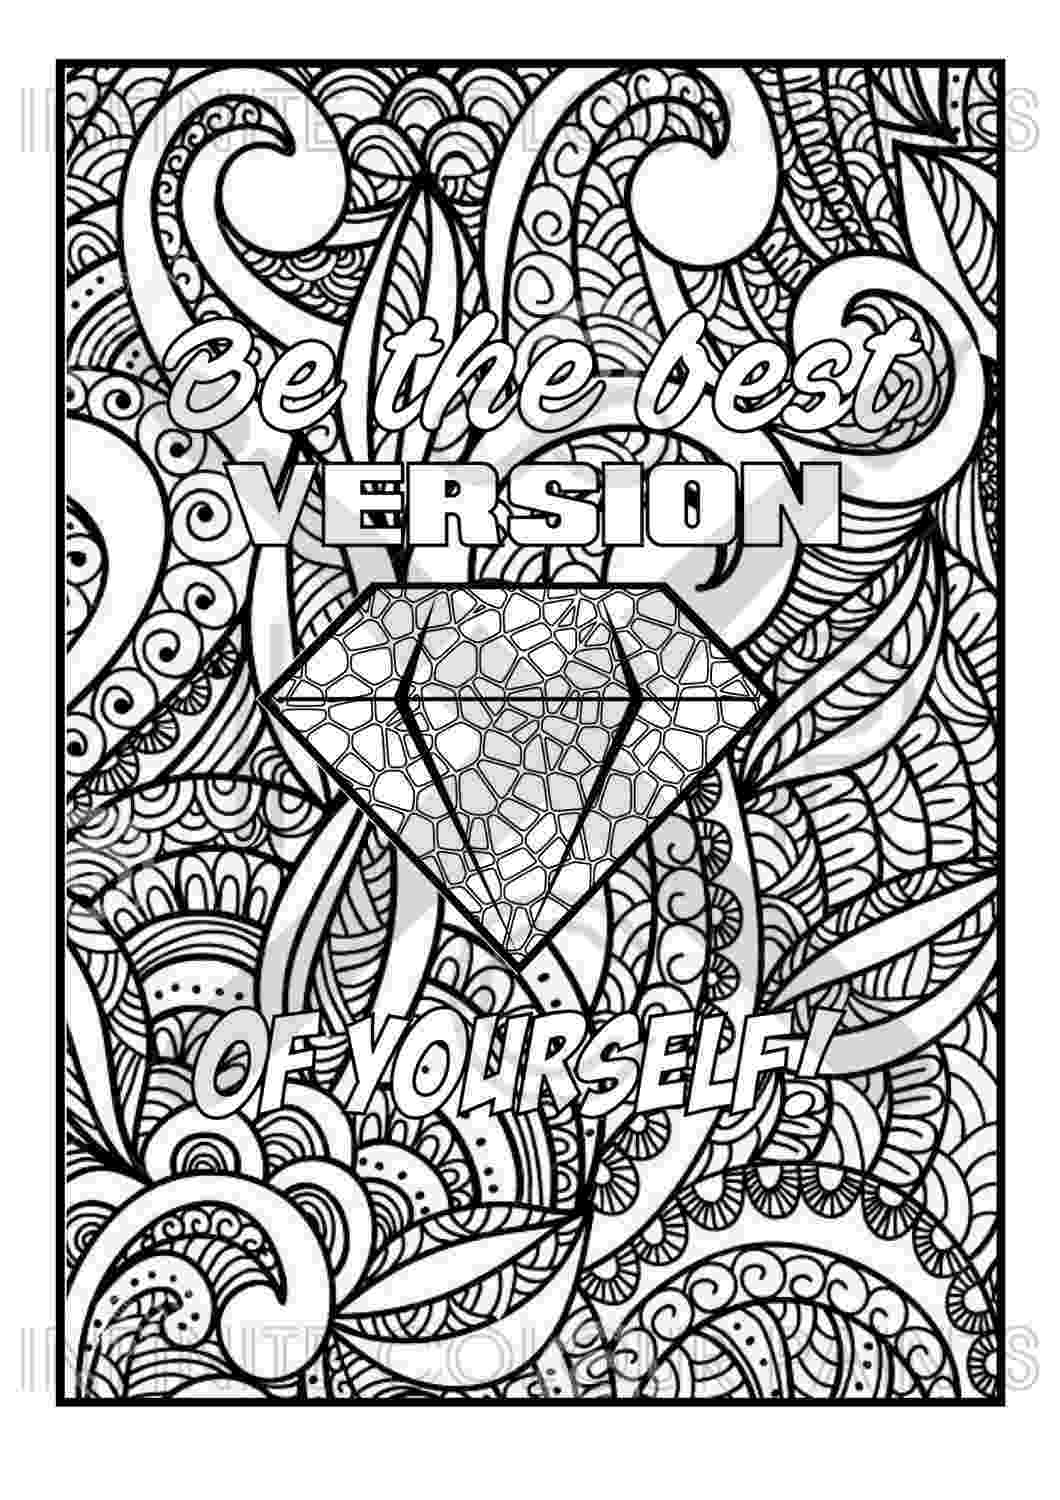 free printable quote coloring pages for adults free adult coloring page coloring contest quote quote for pages adults printable free coloring